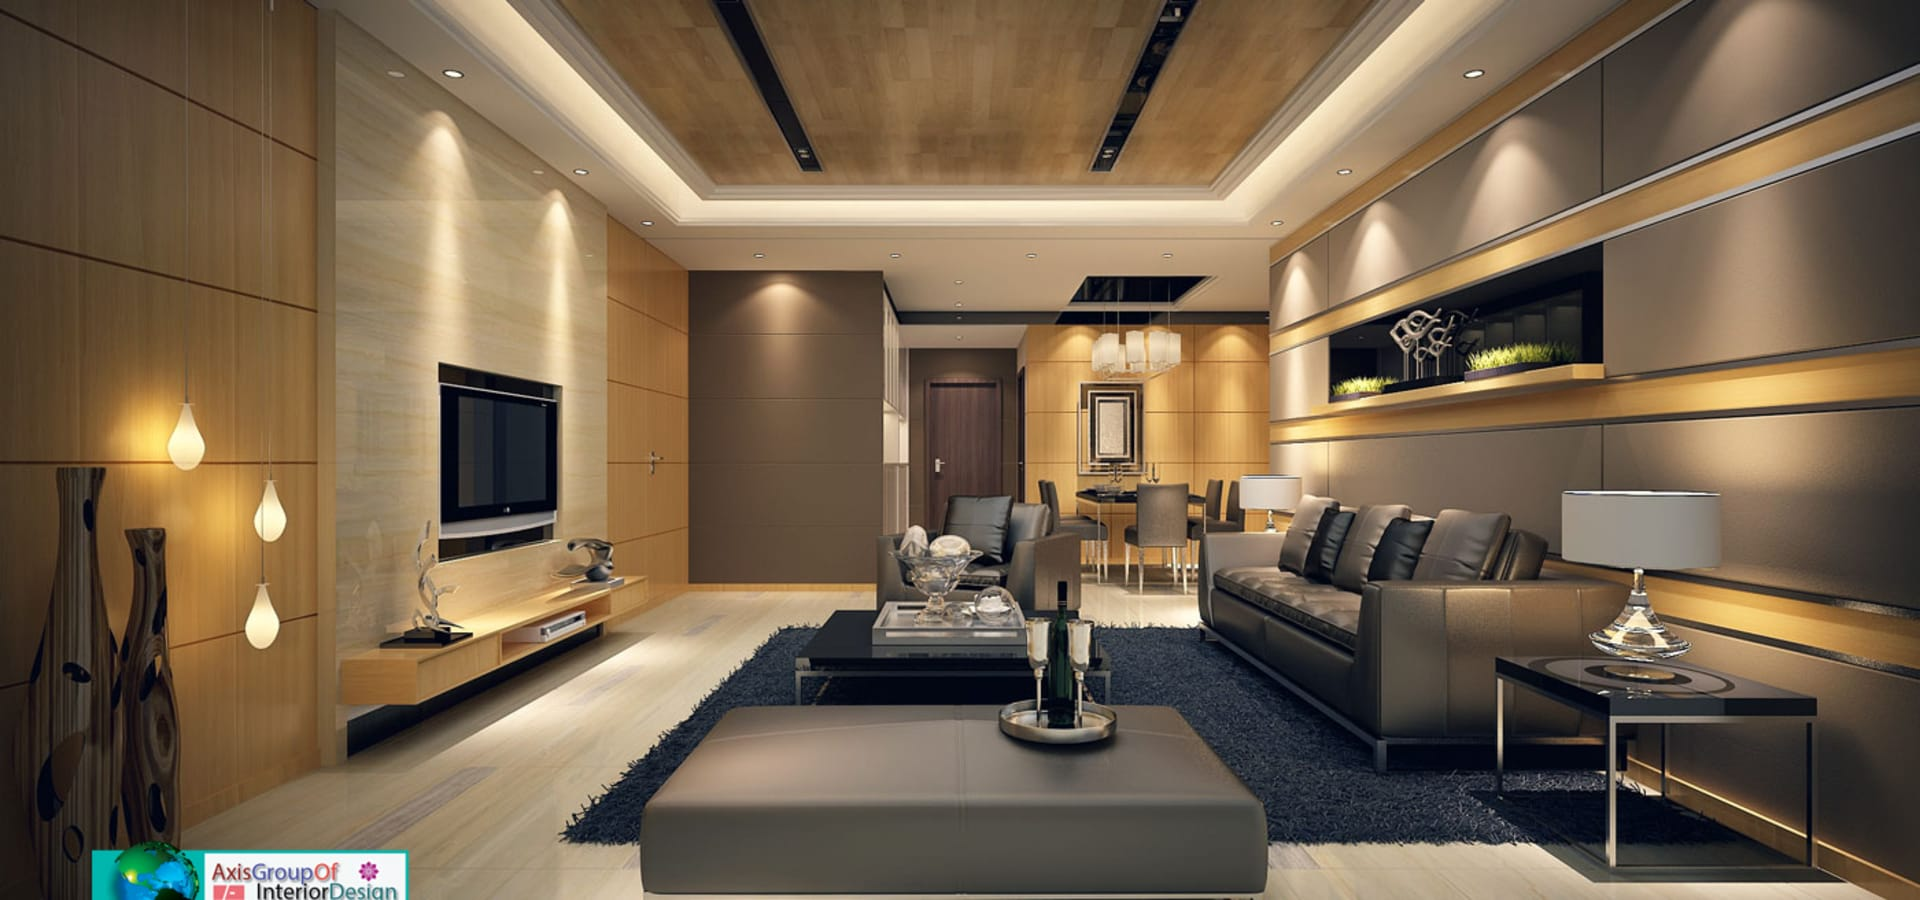 Showroom interior design by Axis Group Of Interior Design homify